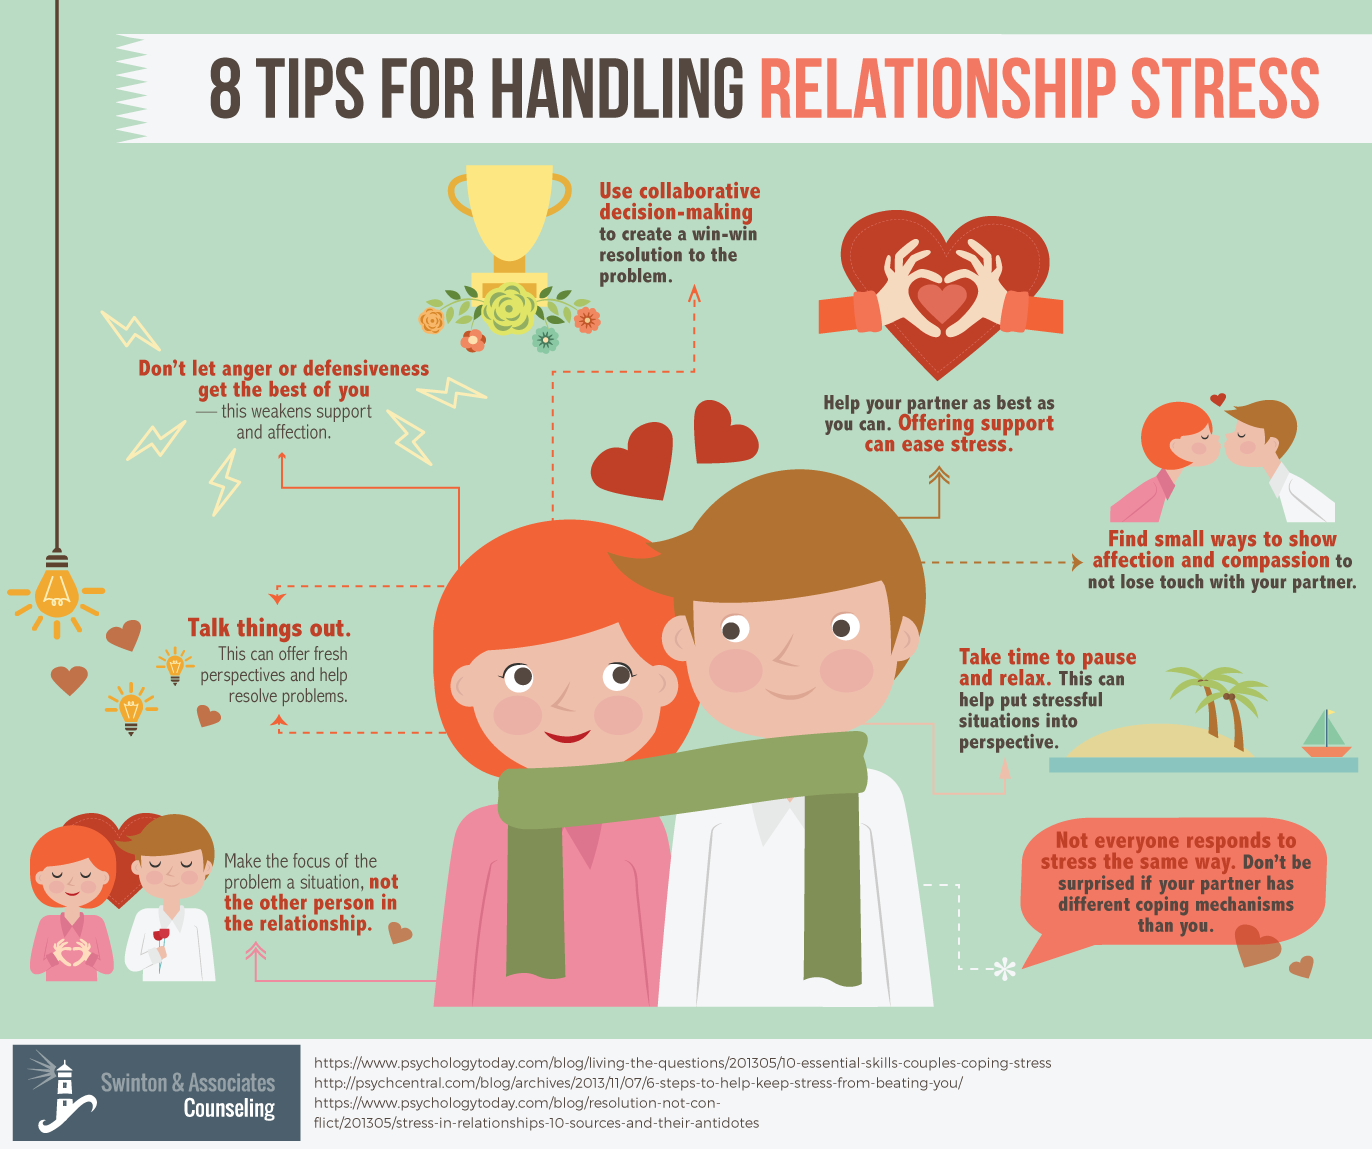 tips on a healthy dating relationship Healthy relationships are crucial for stability & self-sufficiency relationship education focuses on communication, conflict management, & other key skills.